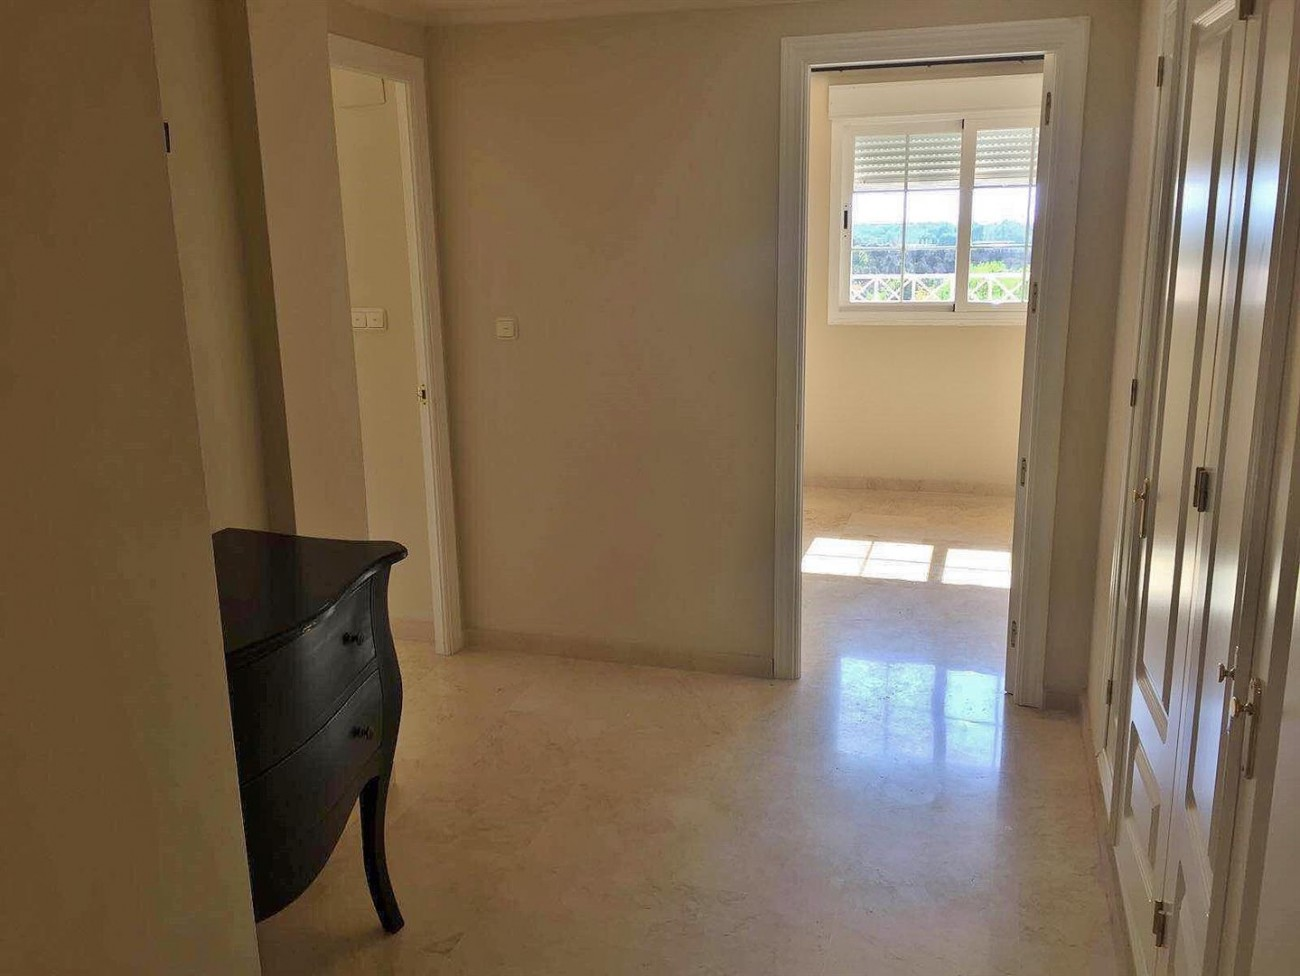 3 Bedrooms apartment for rent East Marbella (7) (Large)